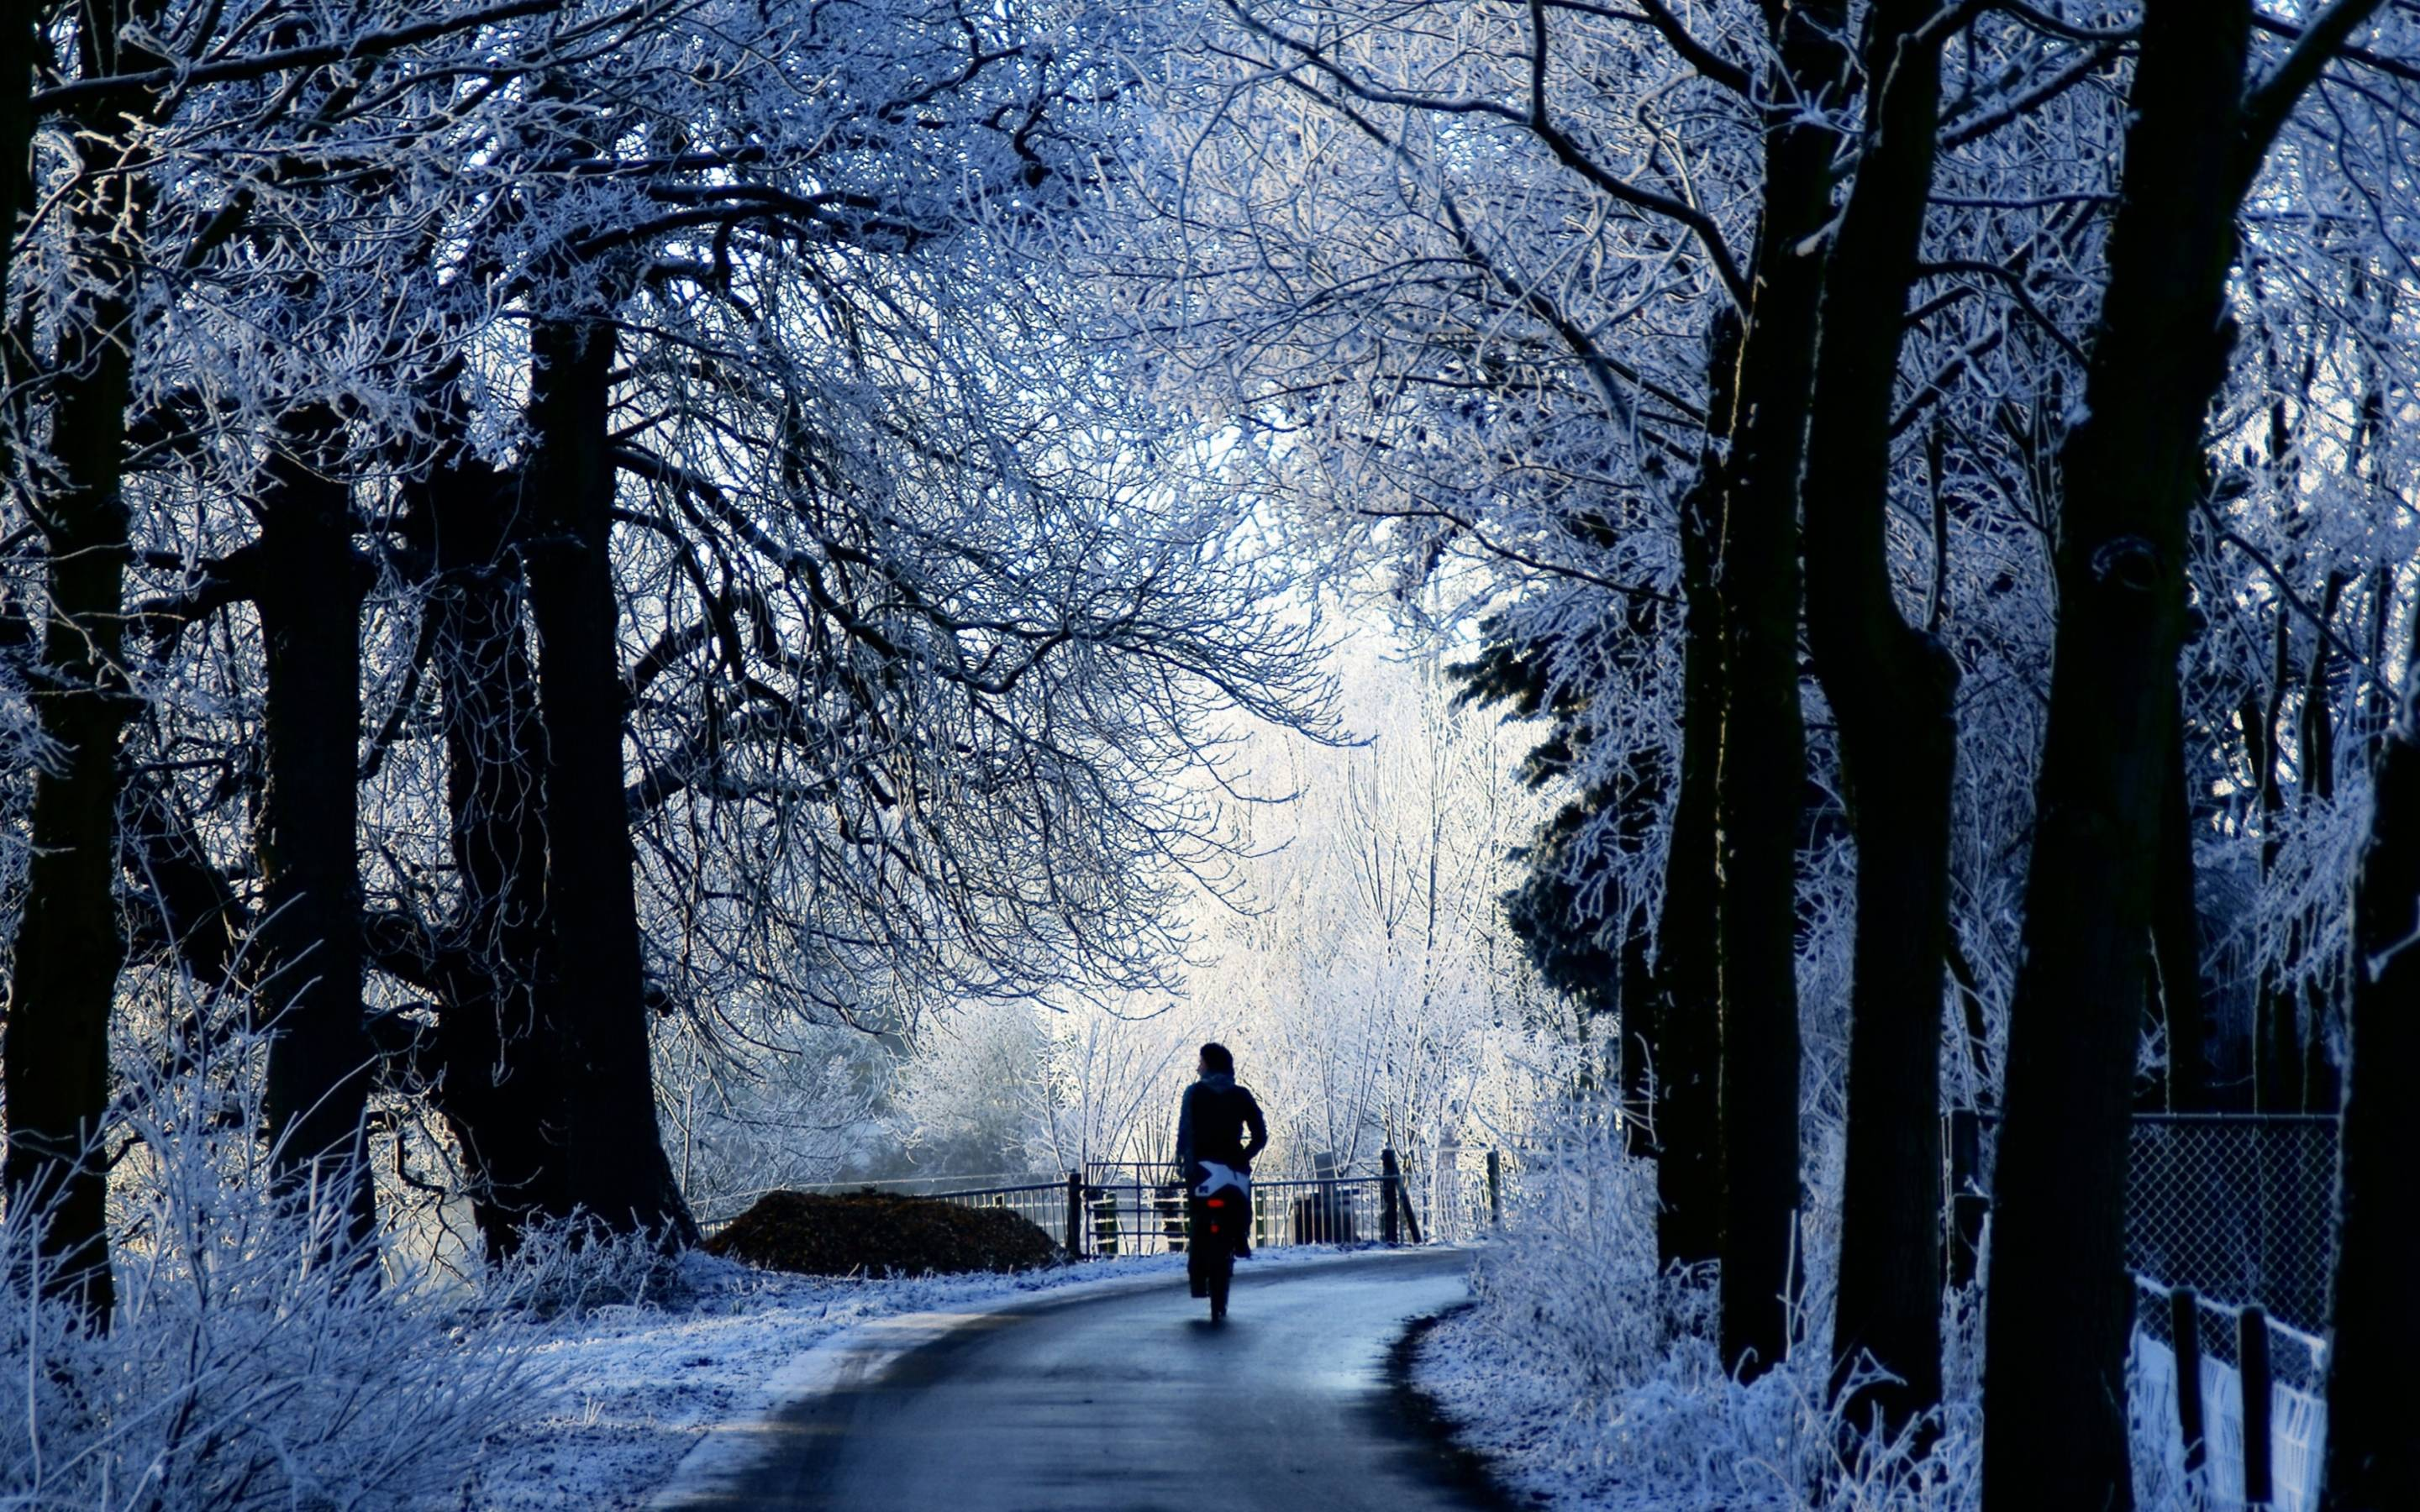 Winter wallpapers for mac wallpaper cave - Free winter wallpaper for phone ...